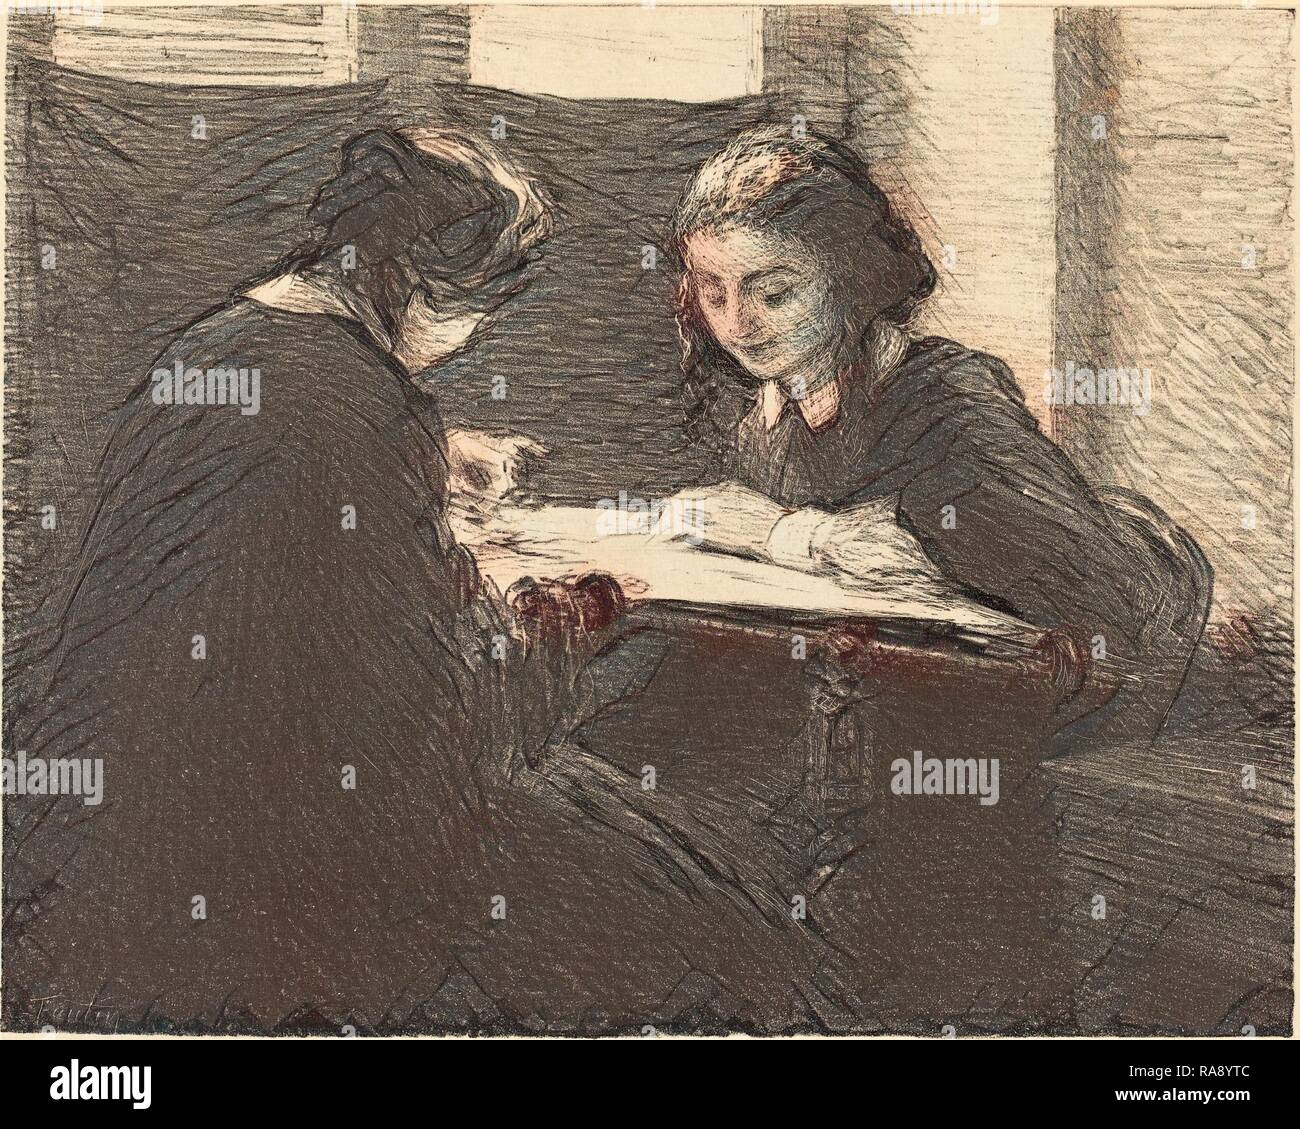 Henri Fantin-Latour (French, 1836 - 1904), The Embroiderers (Les brodeuses), 1898, chine colle lithograph. Reimagined - Stock Image